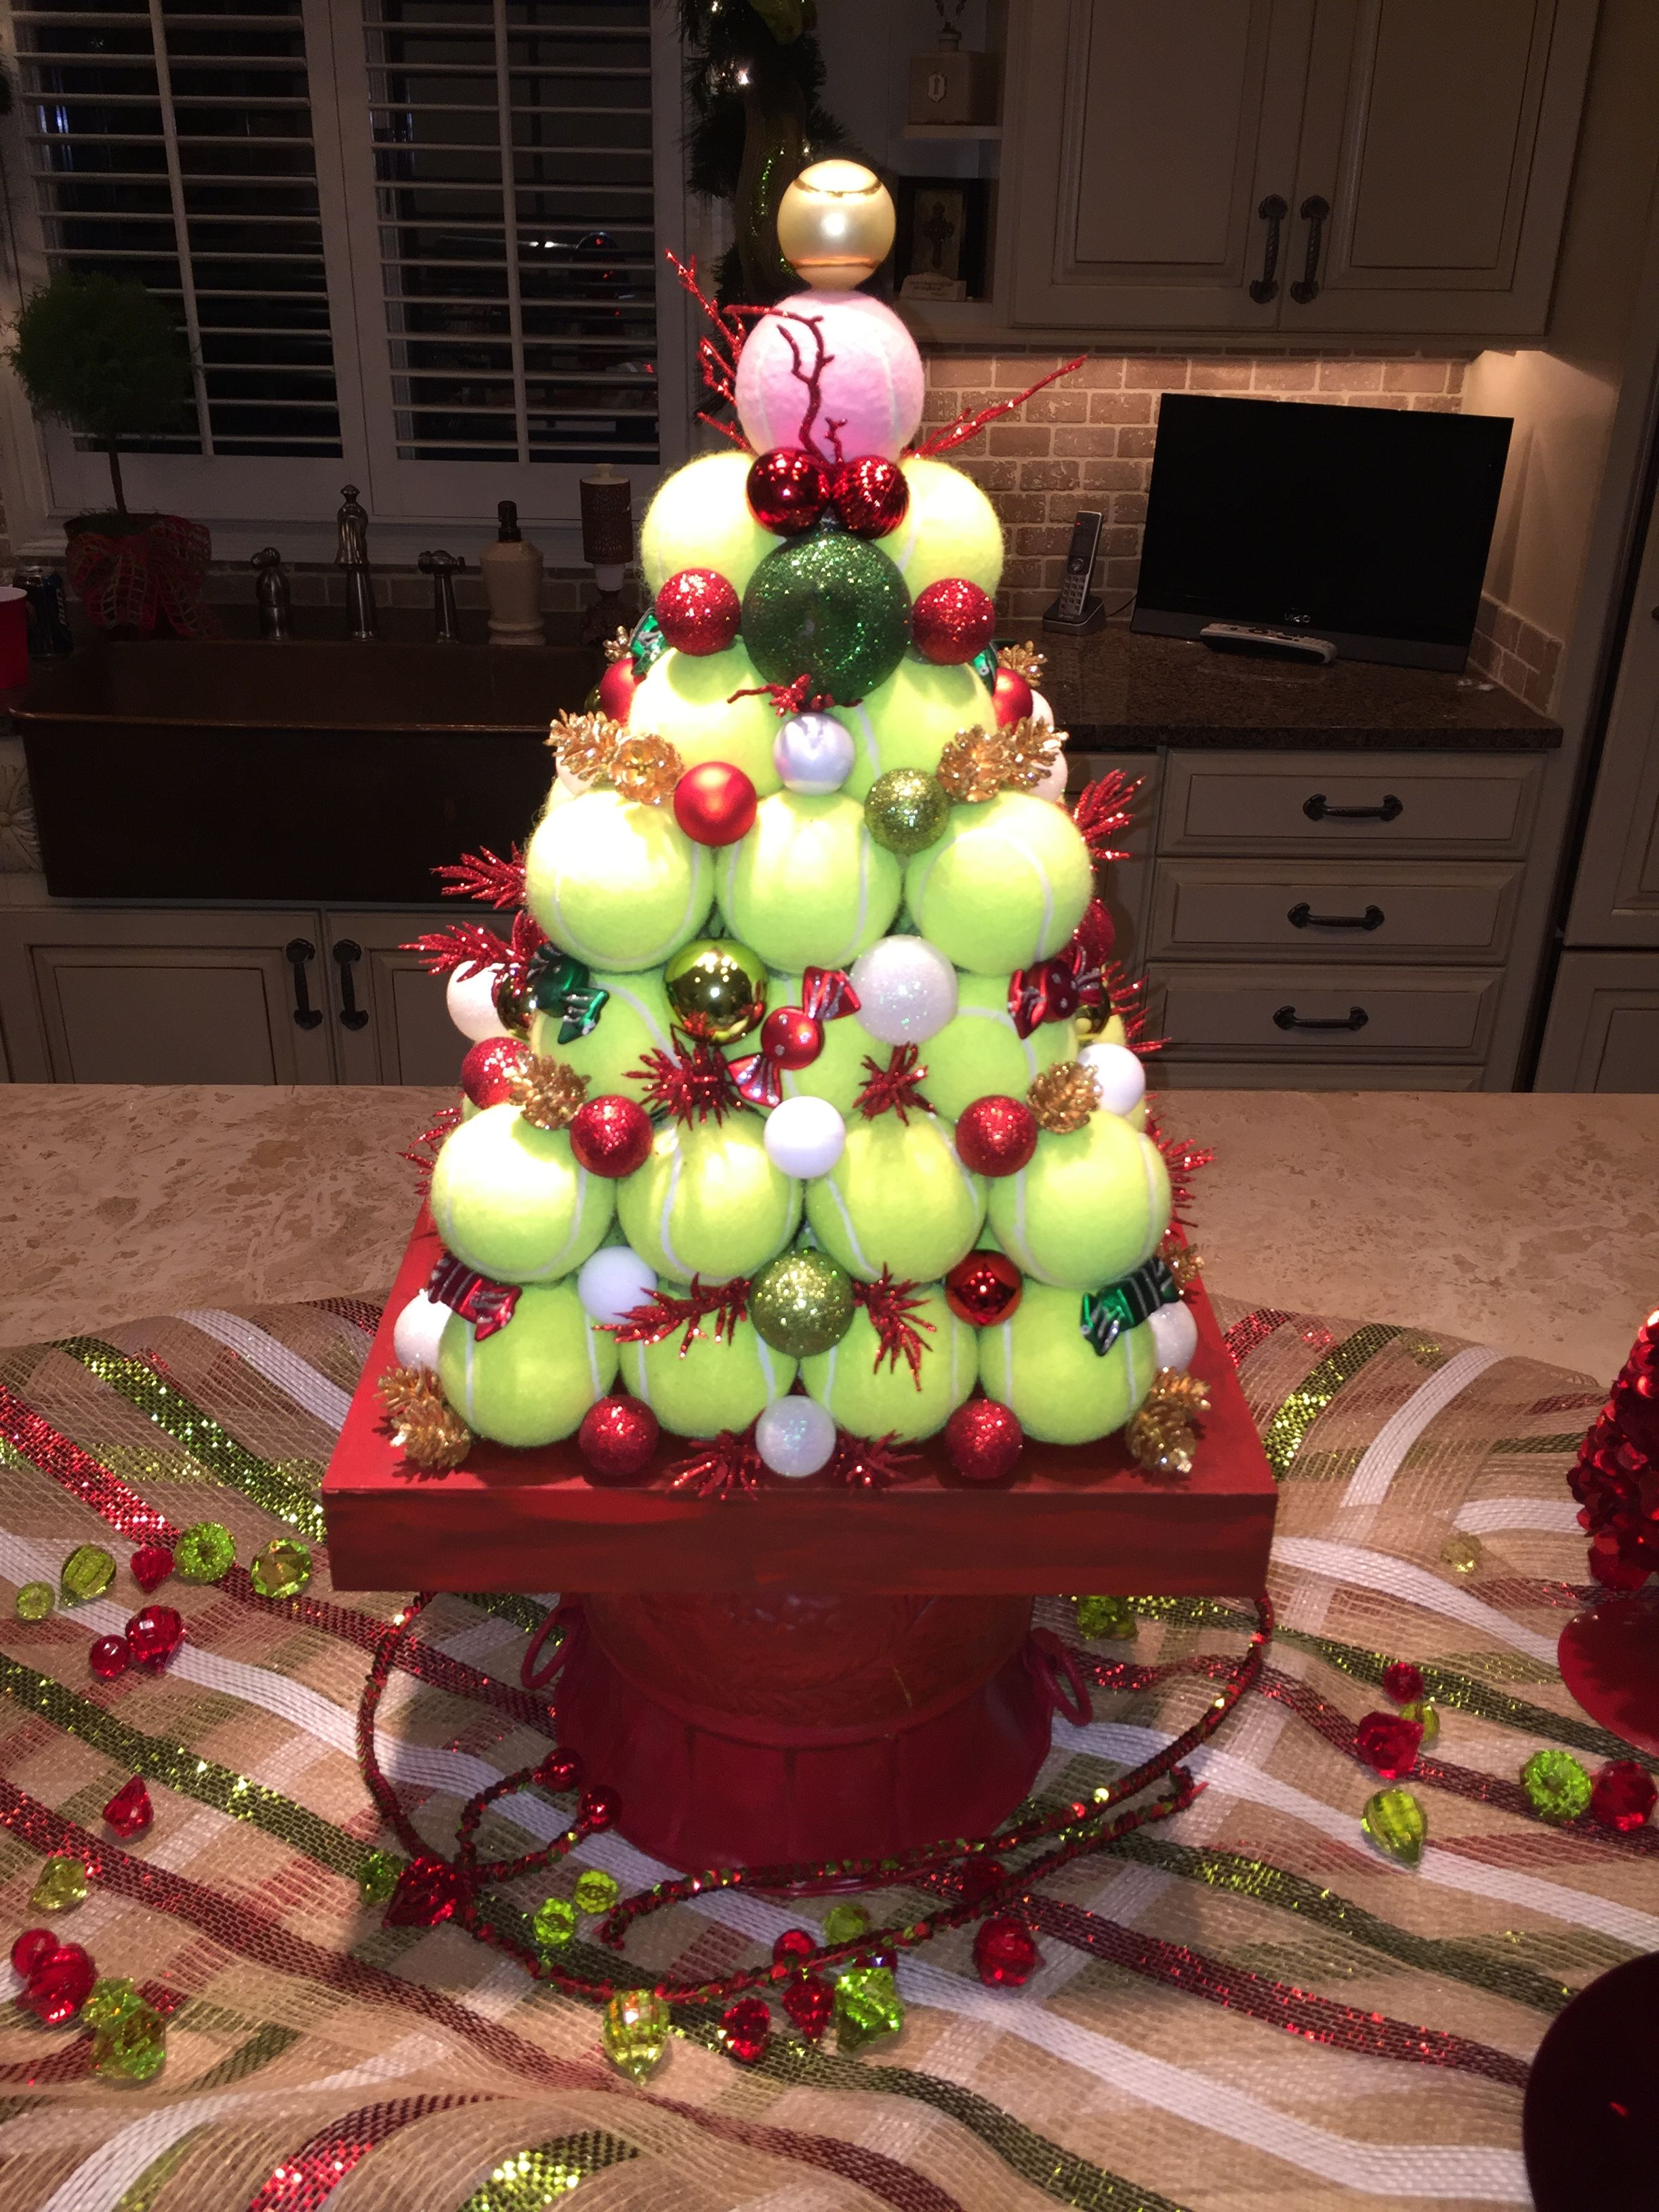 Awesome Christmas tree centerpiece made with tennis balls my friend